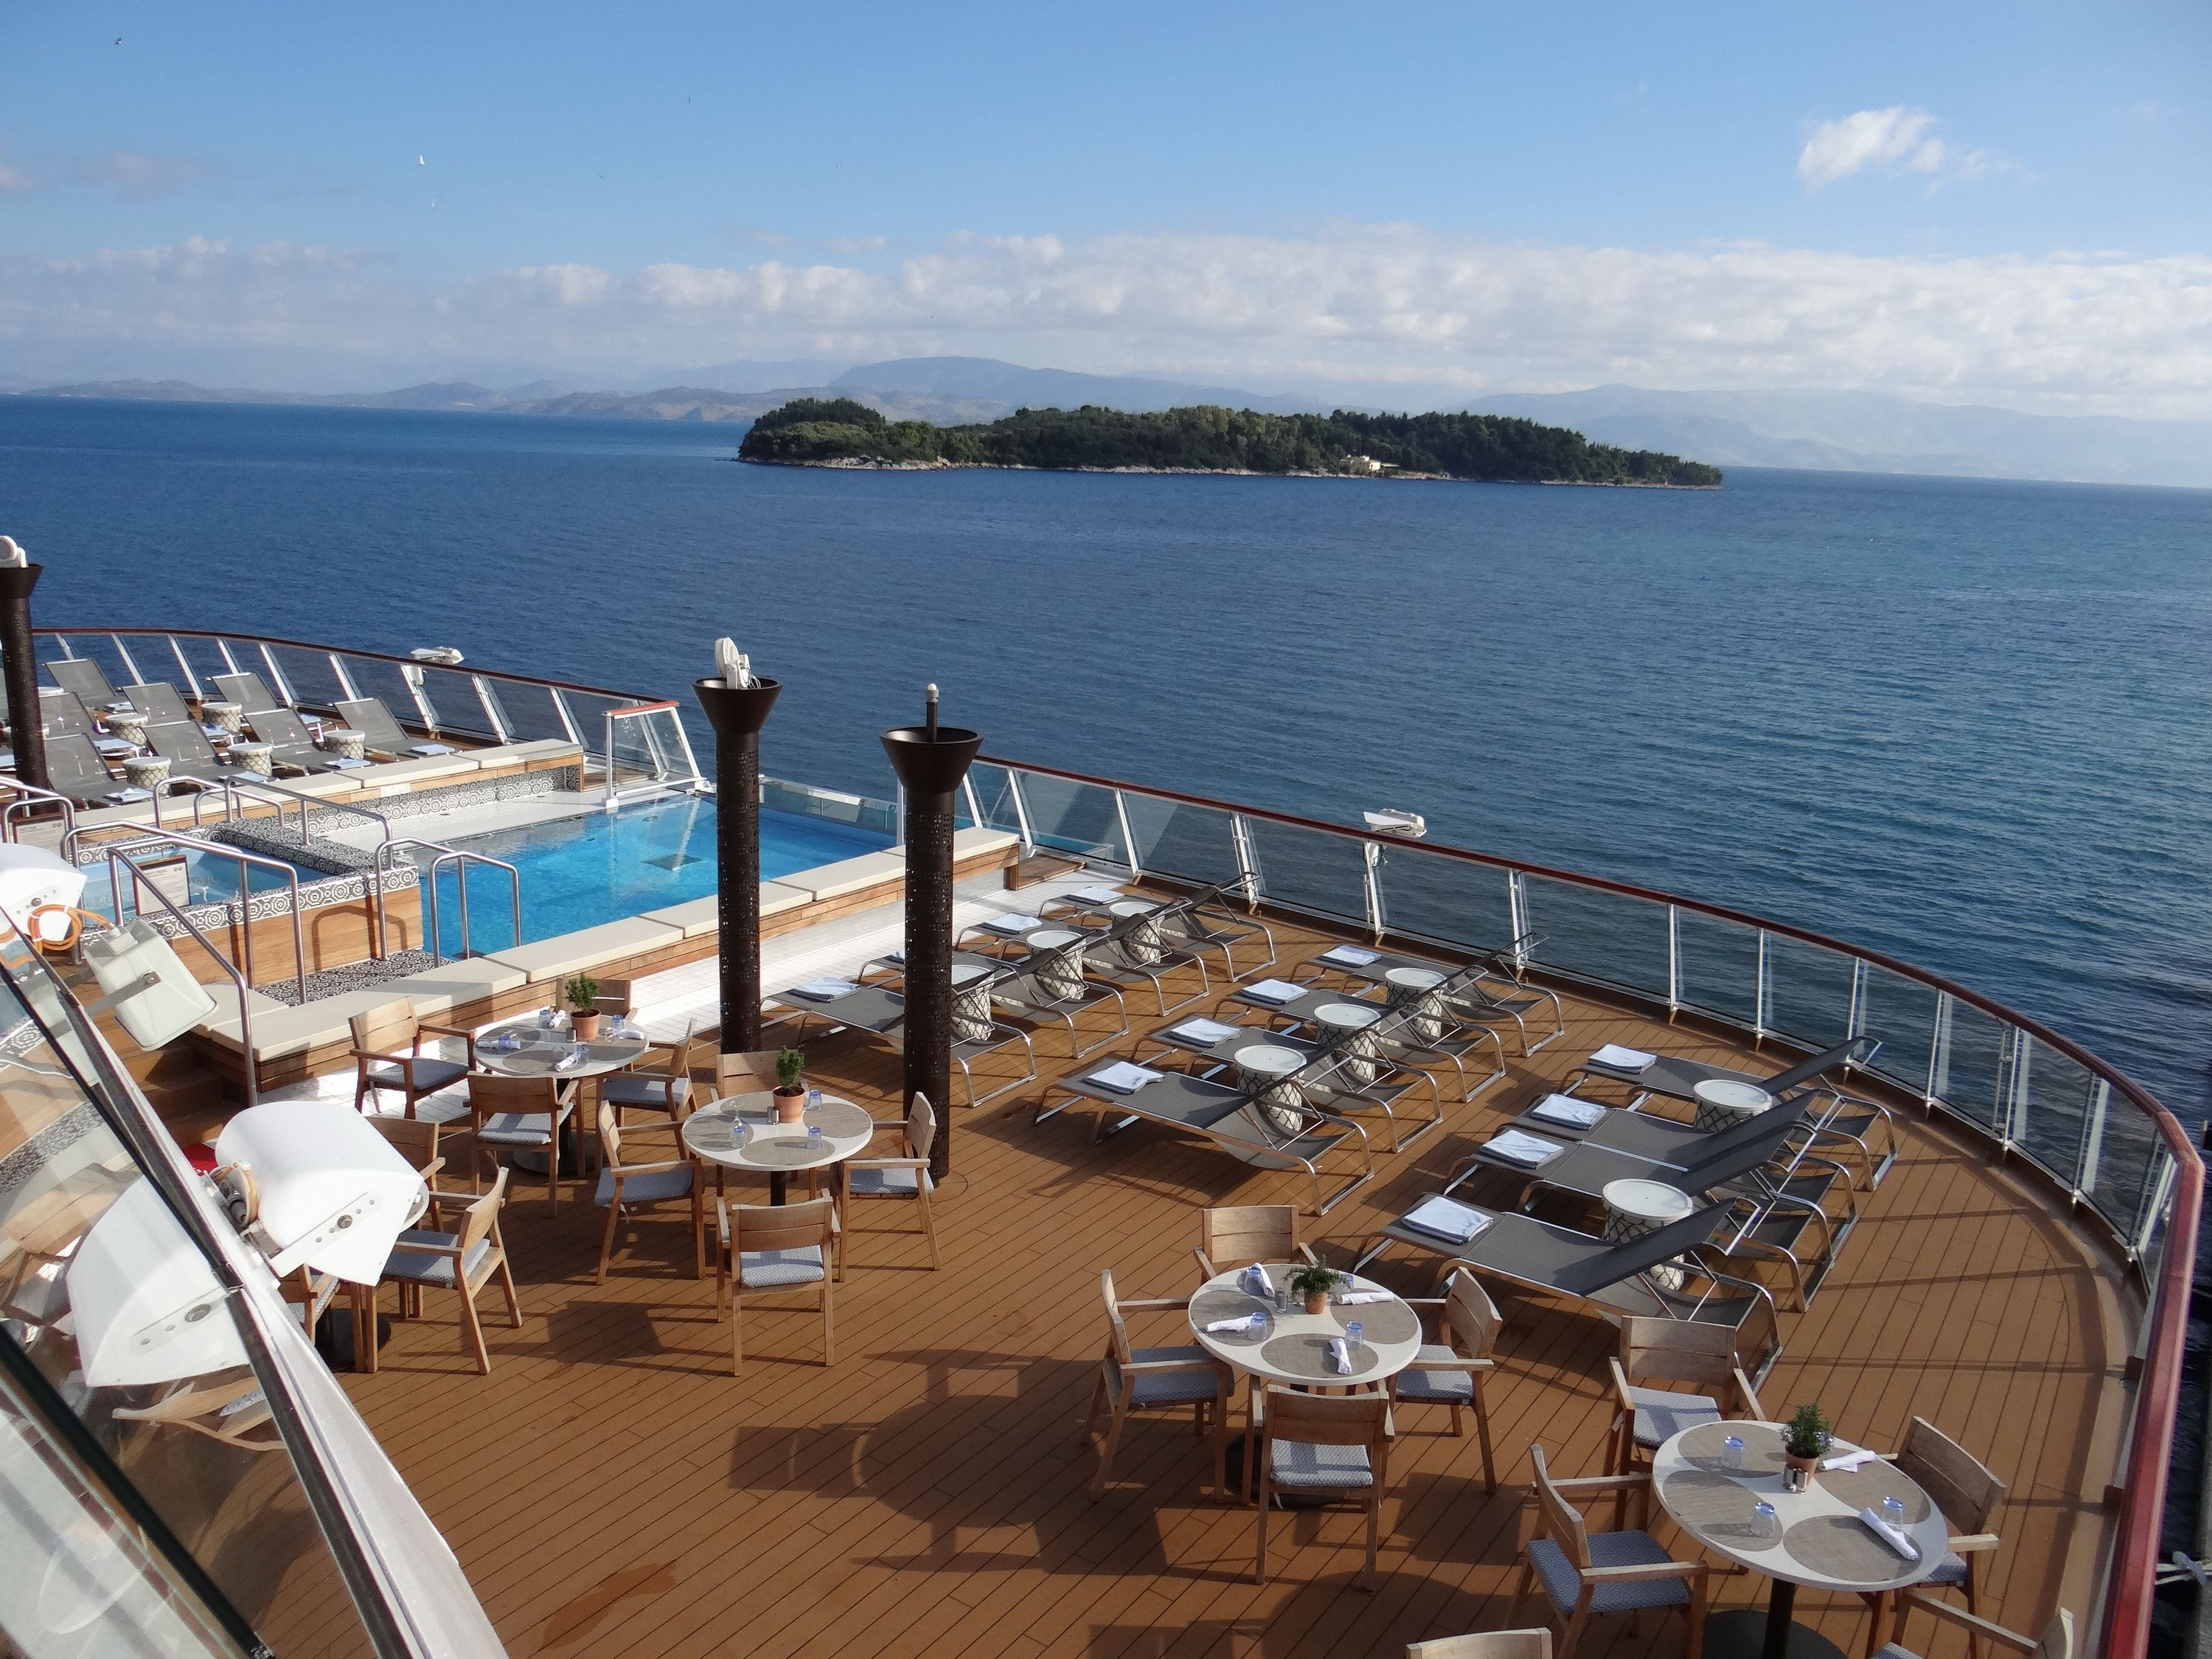 Viking Sea outdoor seating and infinity pool